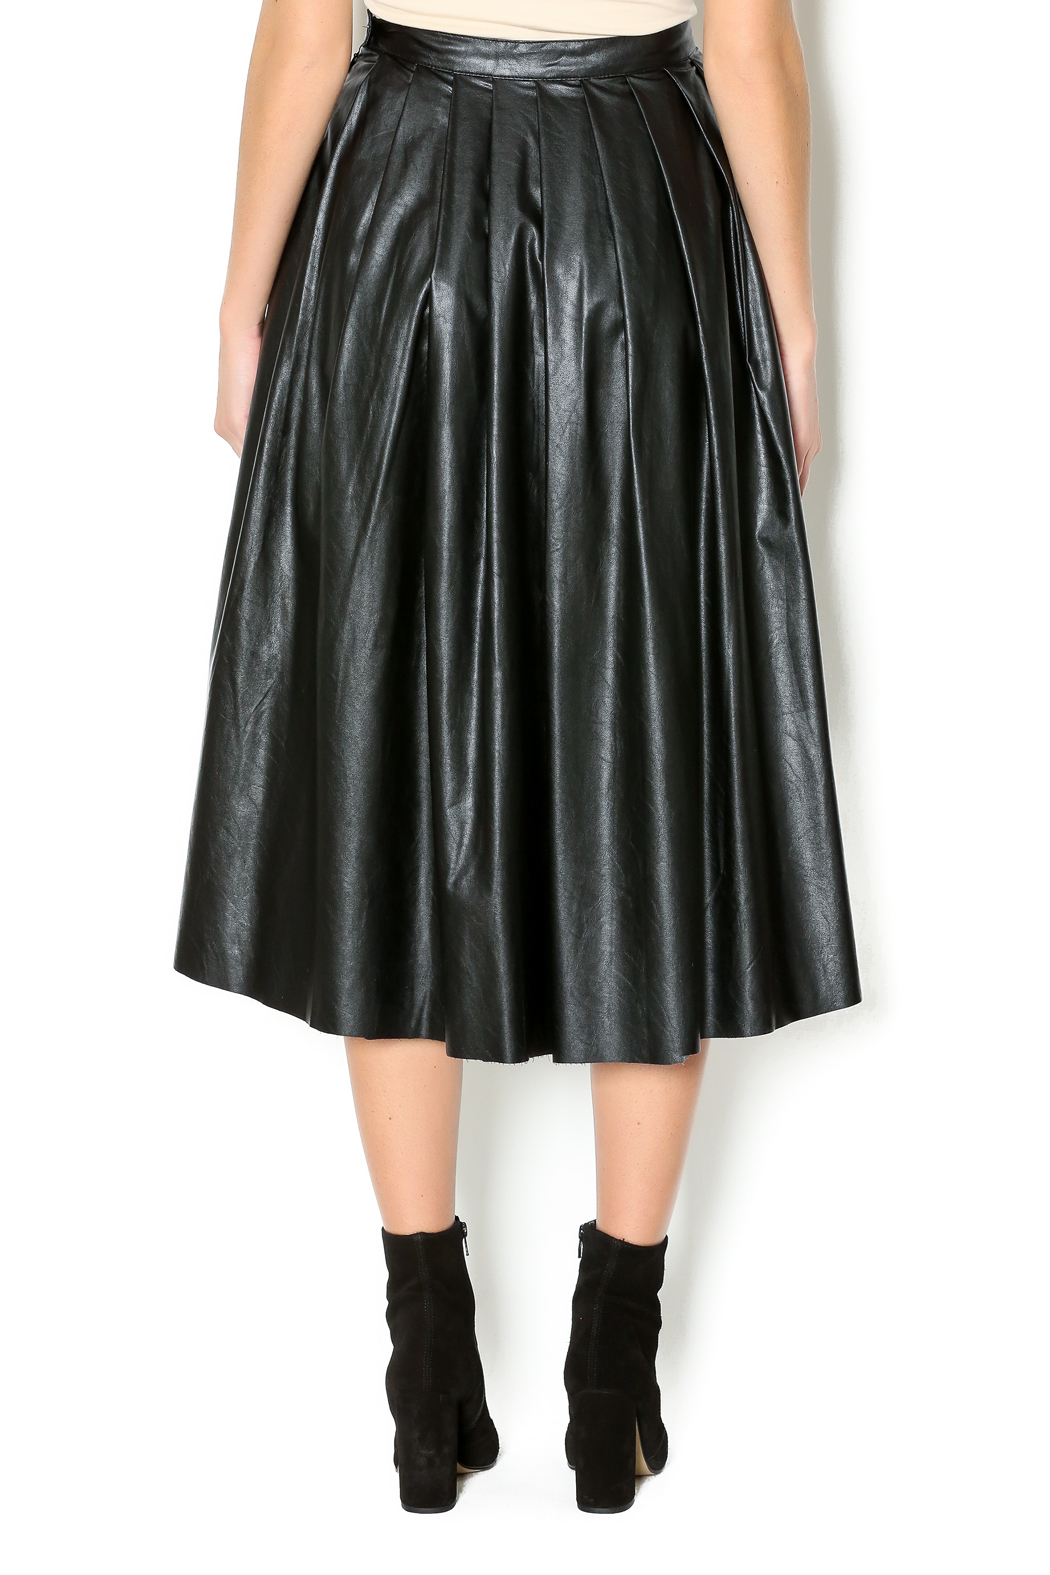 Freeway Faux Leather Skirt - Back Cropped Image